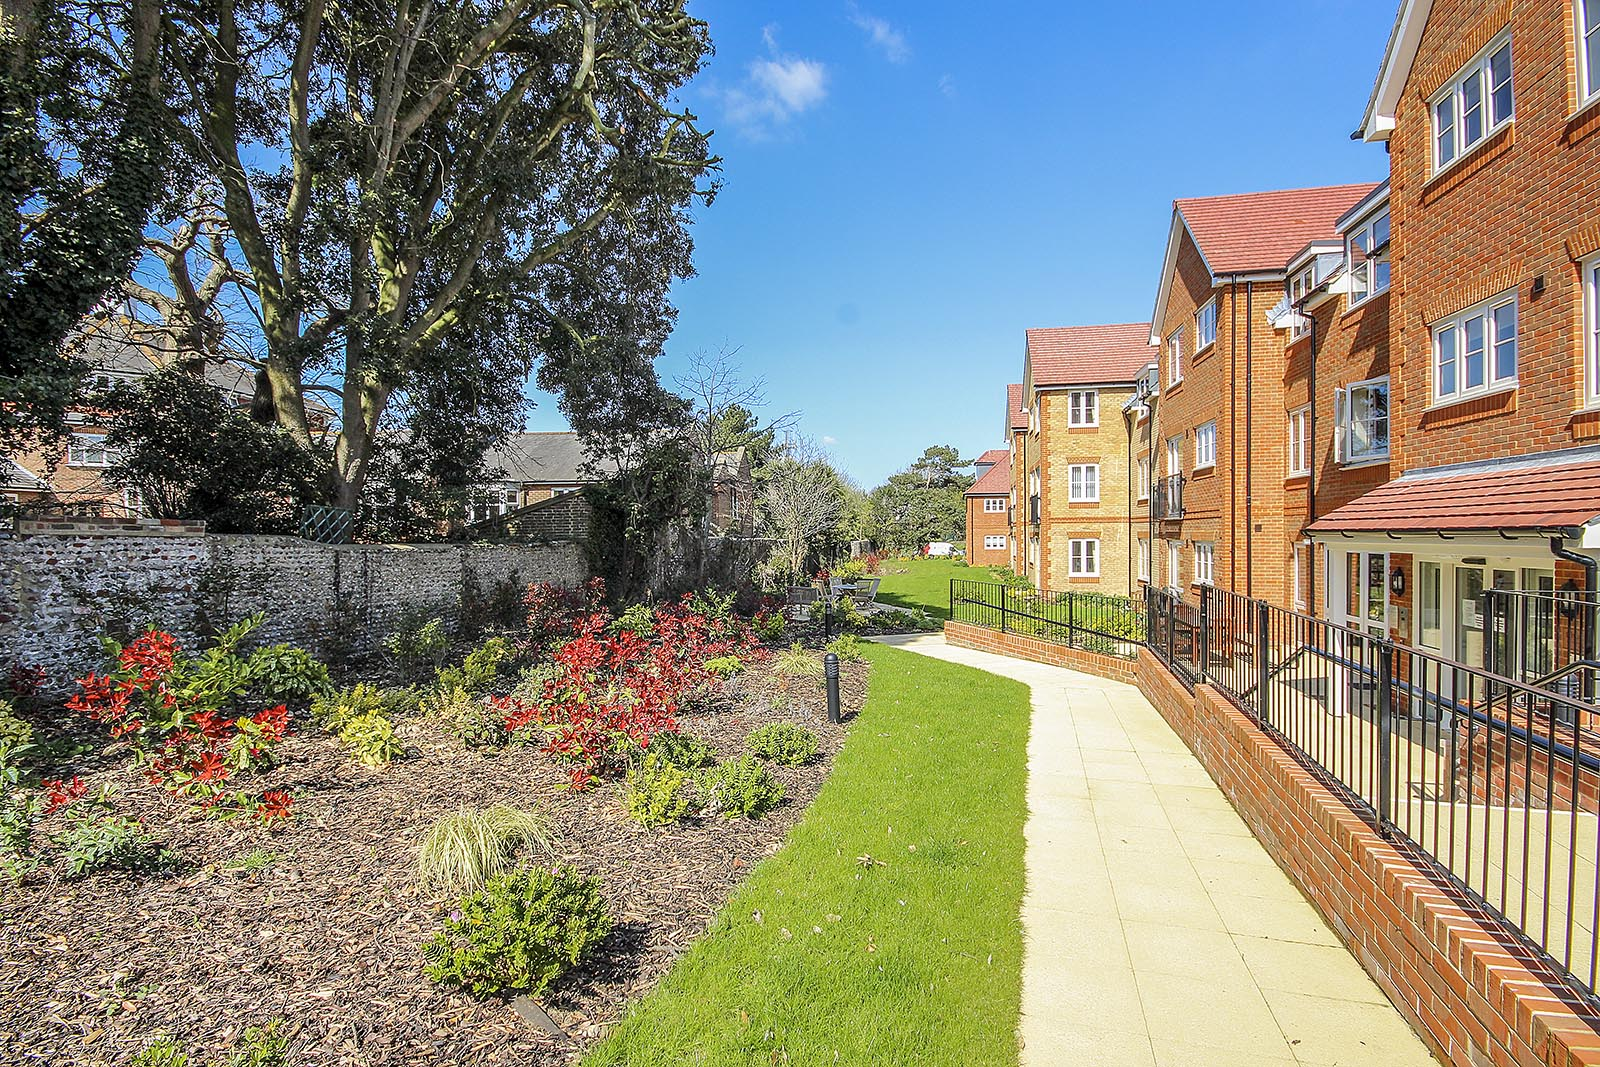 1 bed apartment for sale in Littlehampton 2